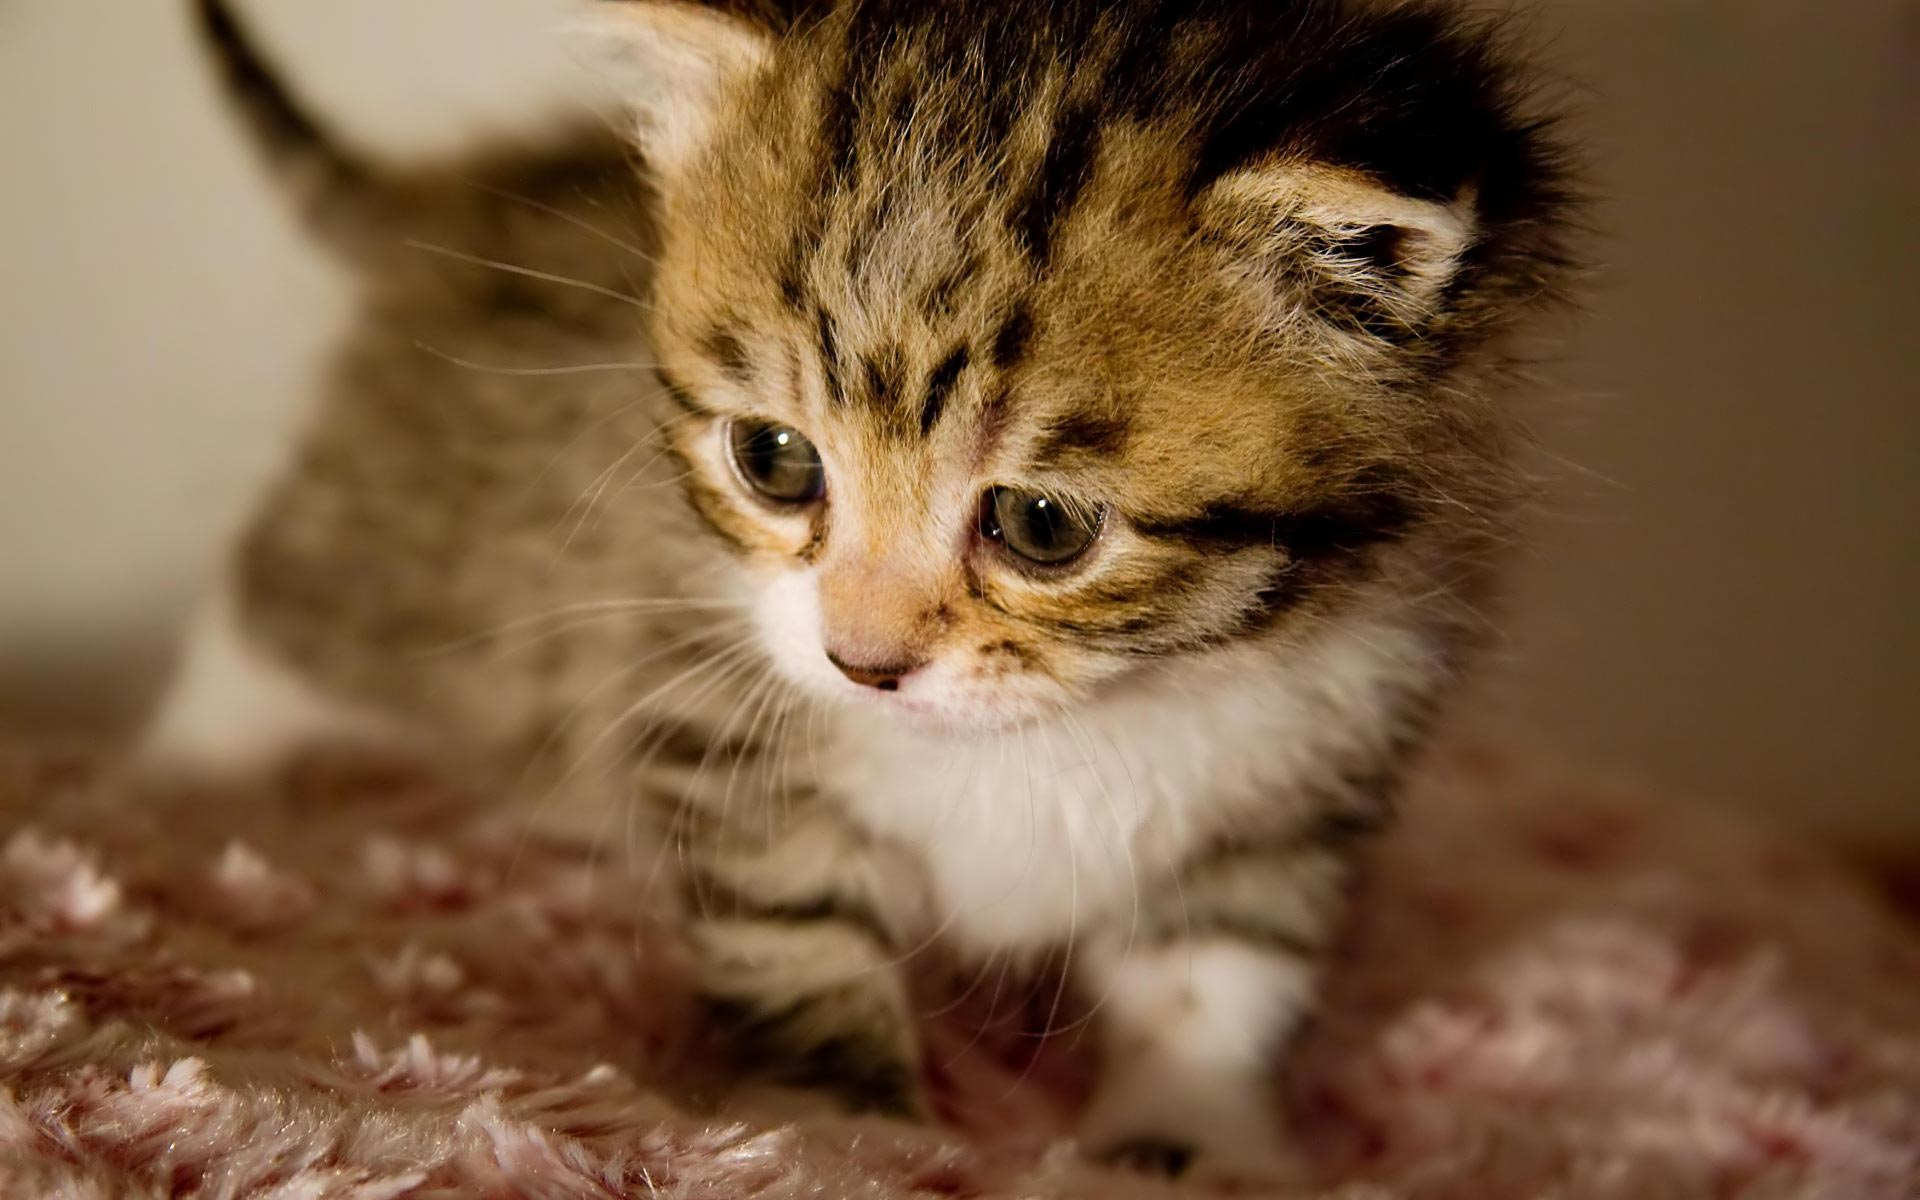 Cute Baby Animals Wallpapers 9905 Hd Wallpapers in Animals   Imagesci 1920x1200